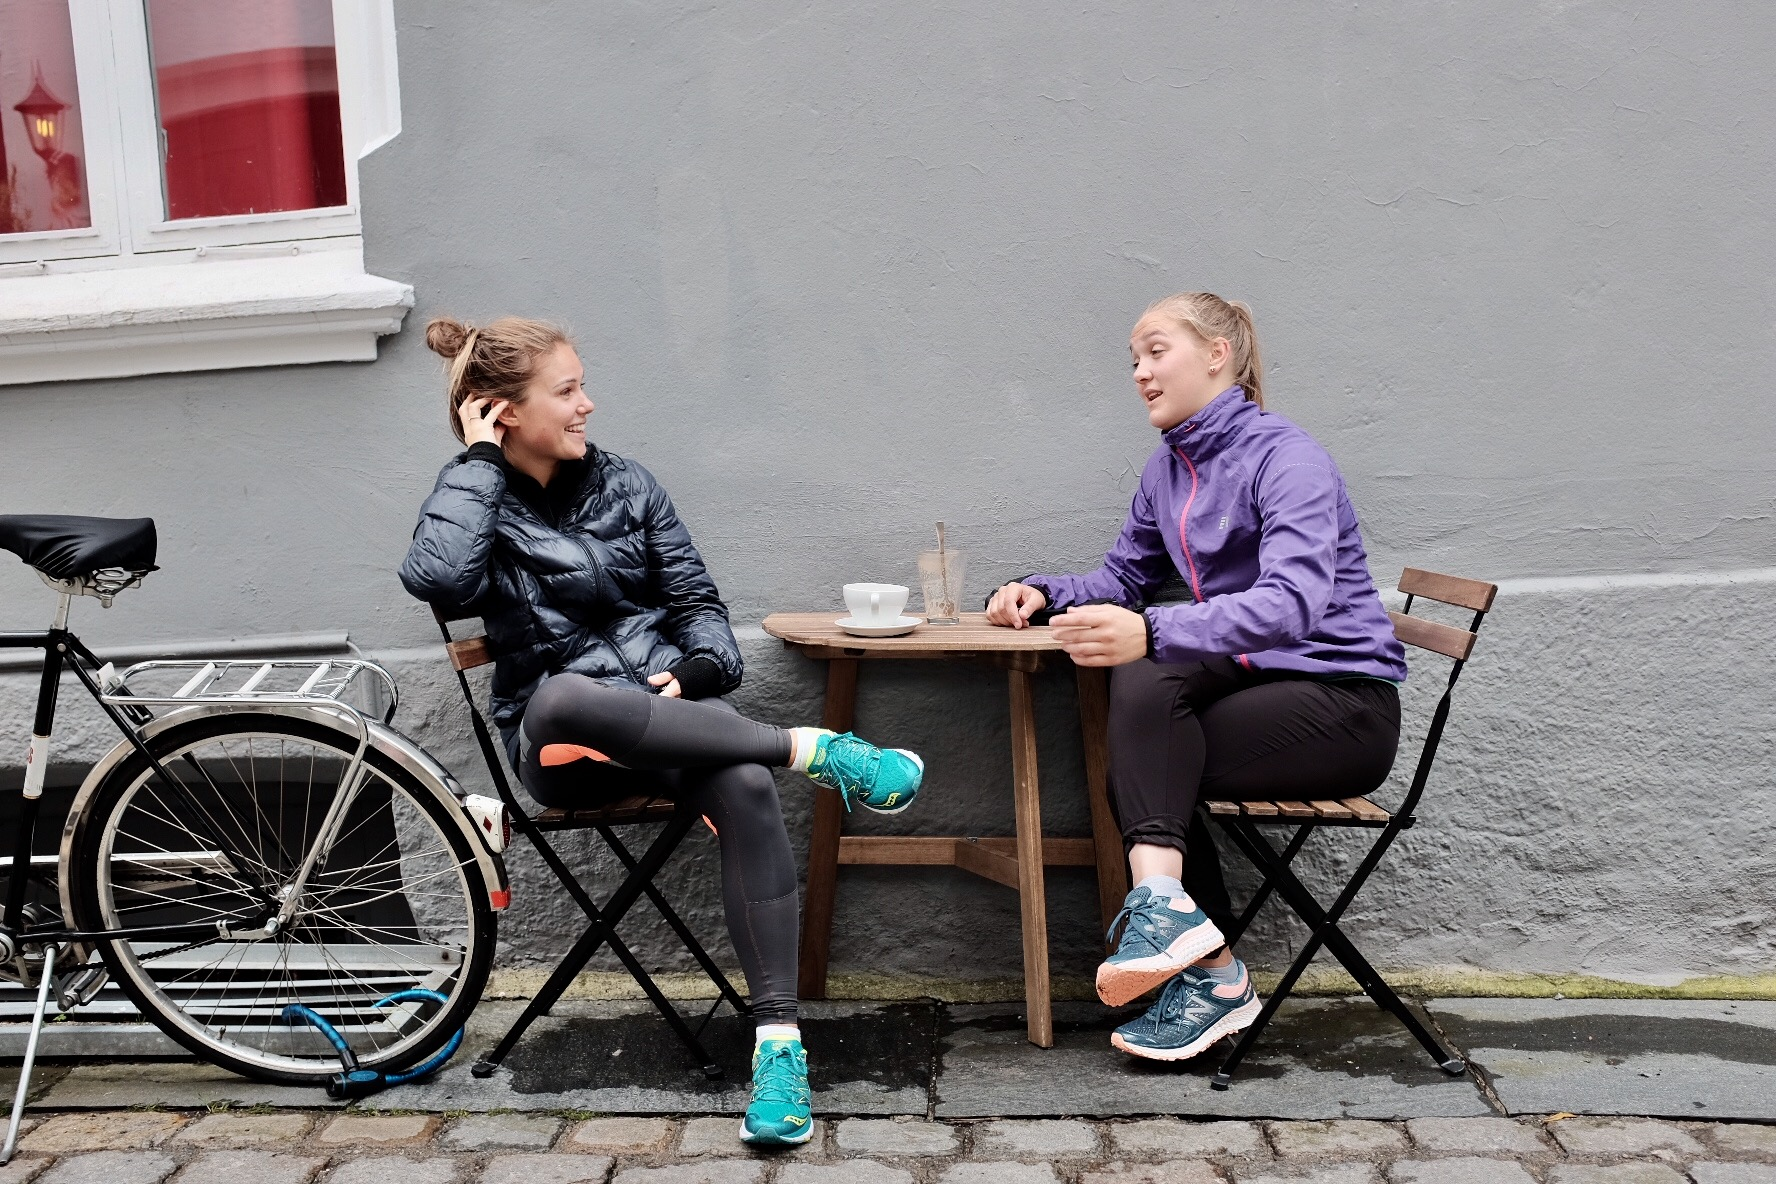 Two girls chatting it up at a local coffee joint.